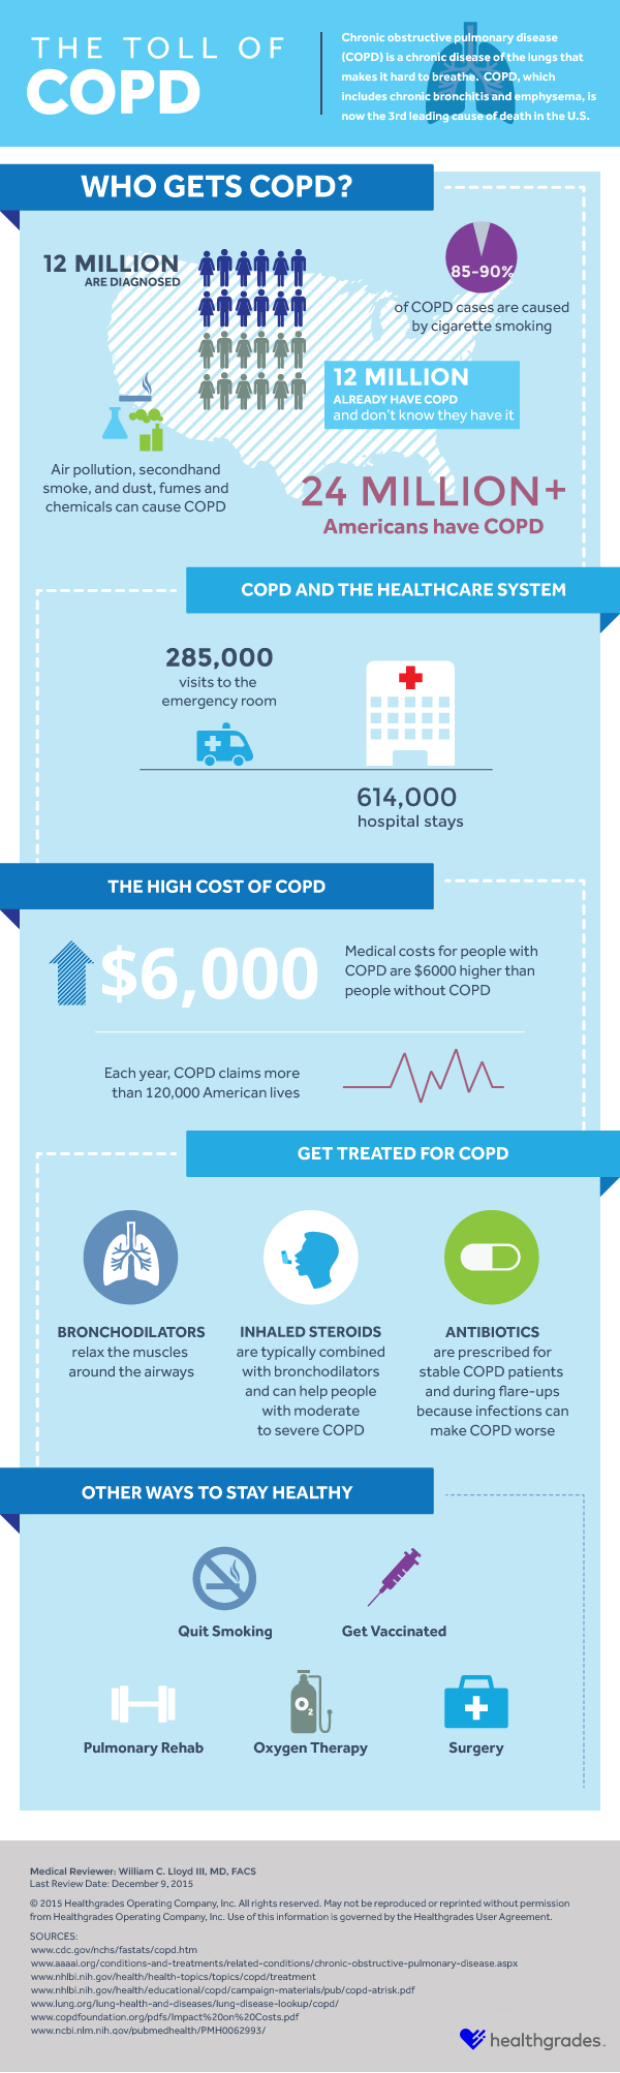 The Toll of COPD